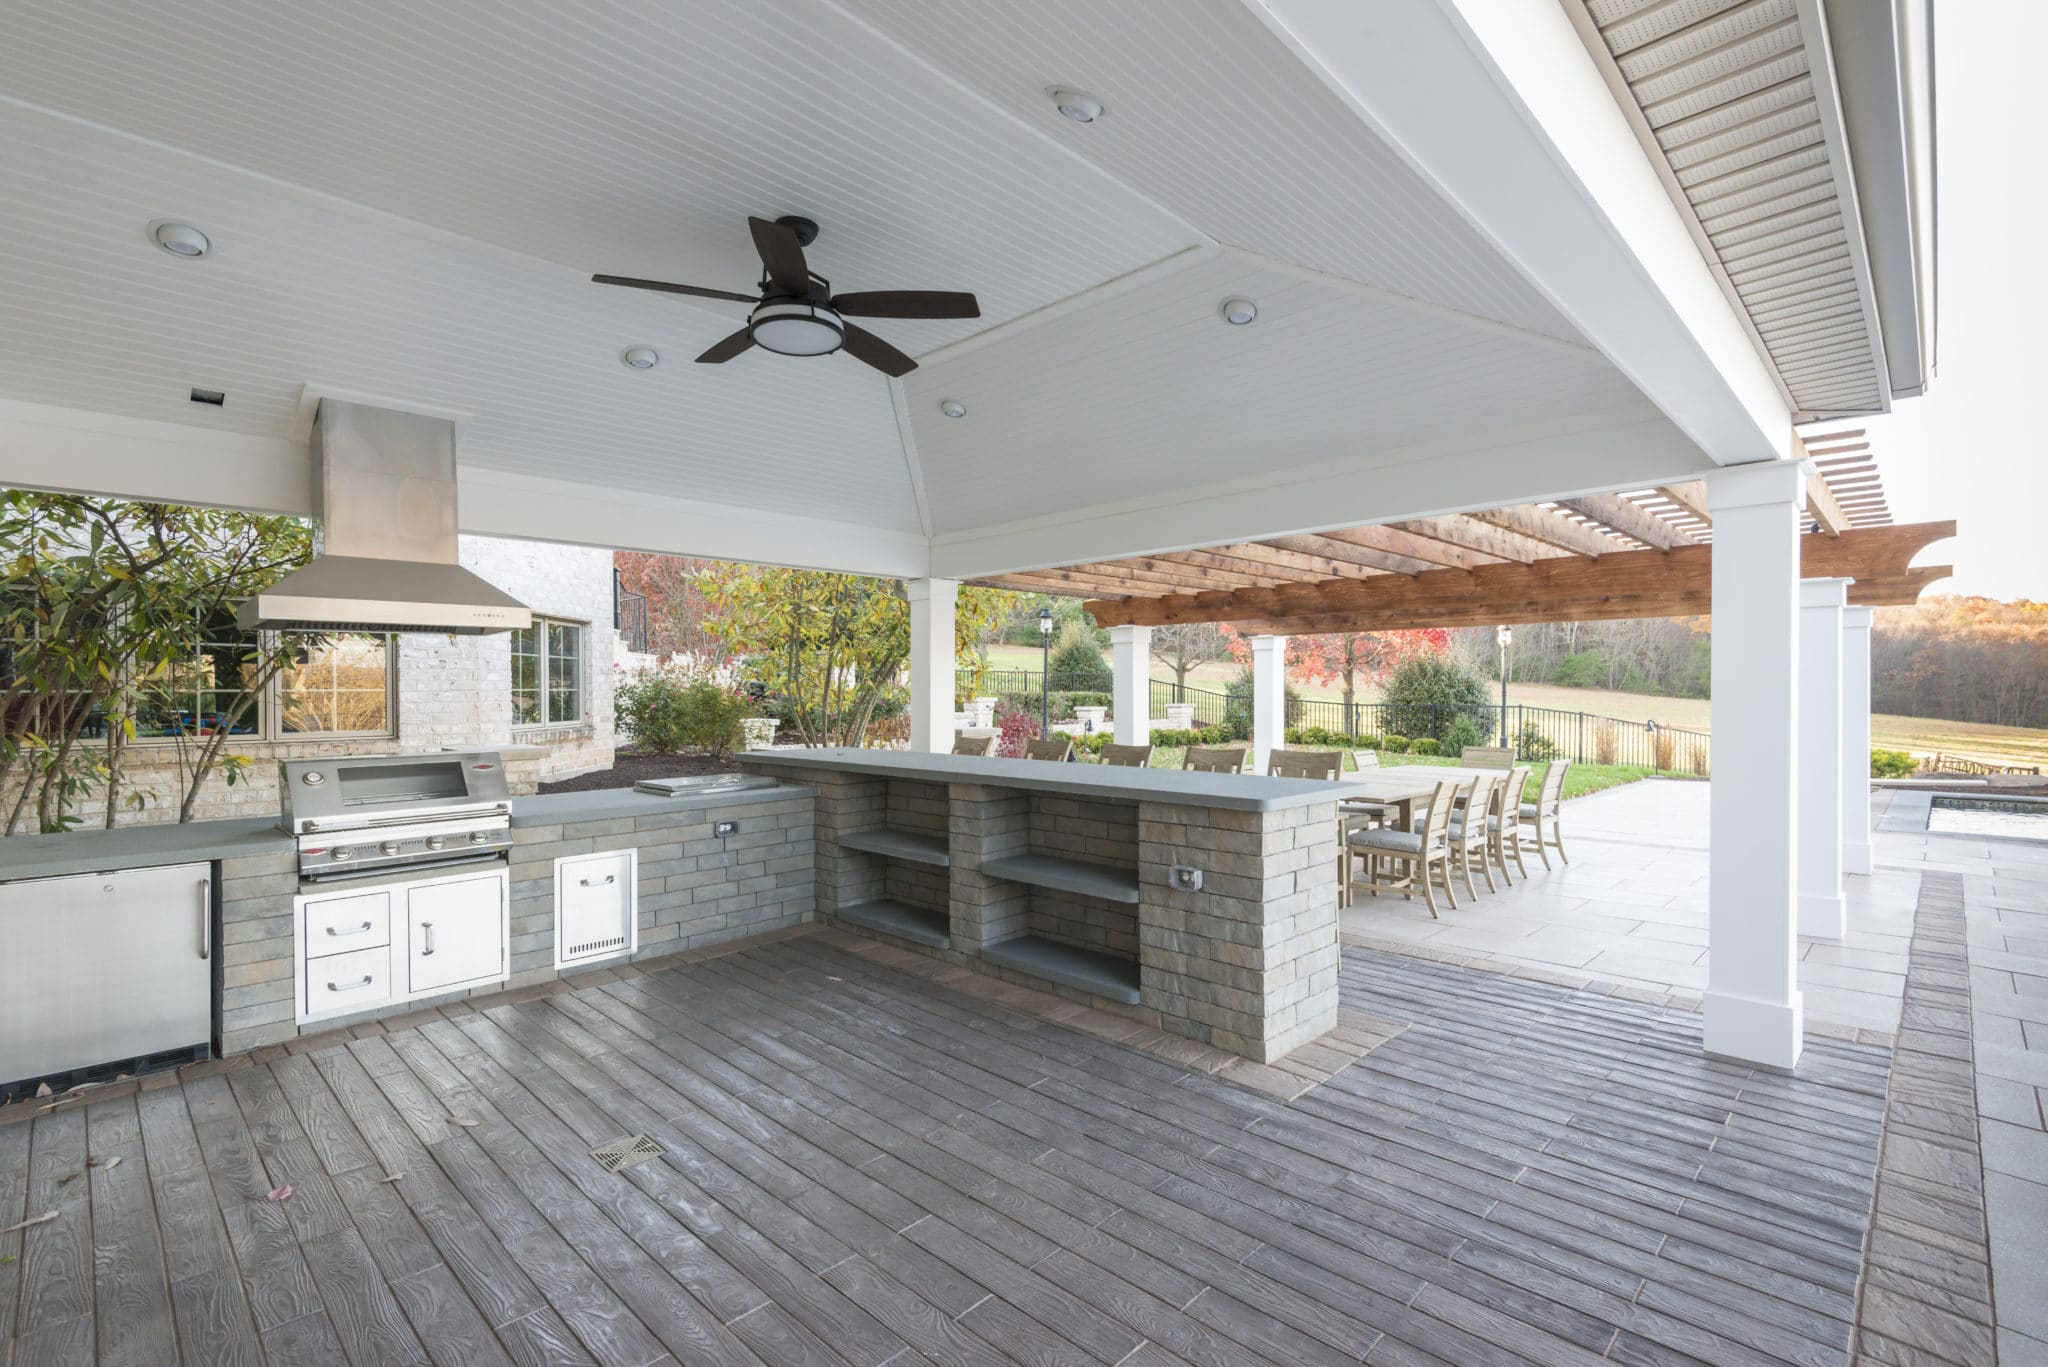 Outdoor Kitchen on Patio